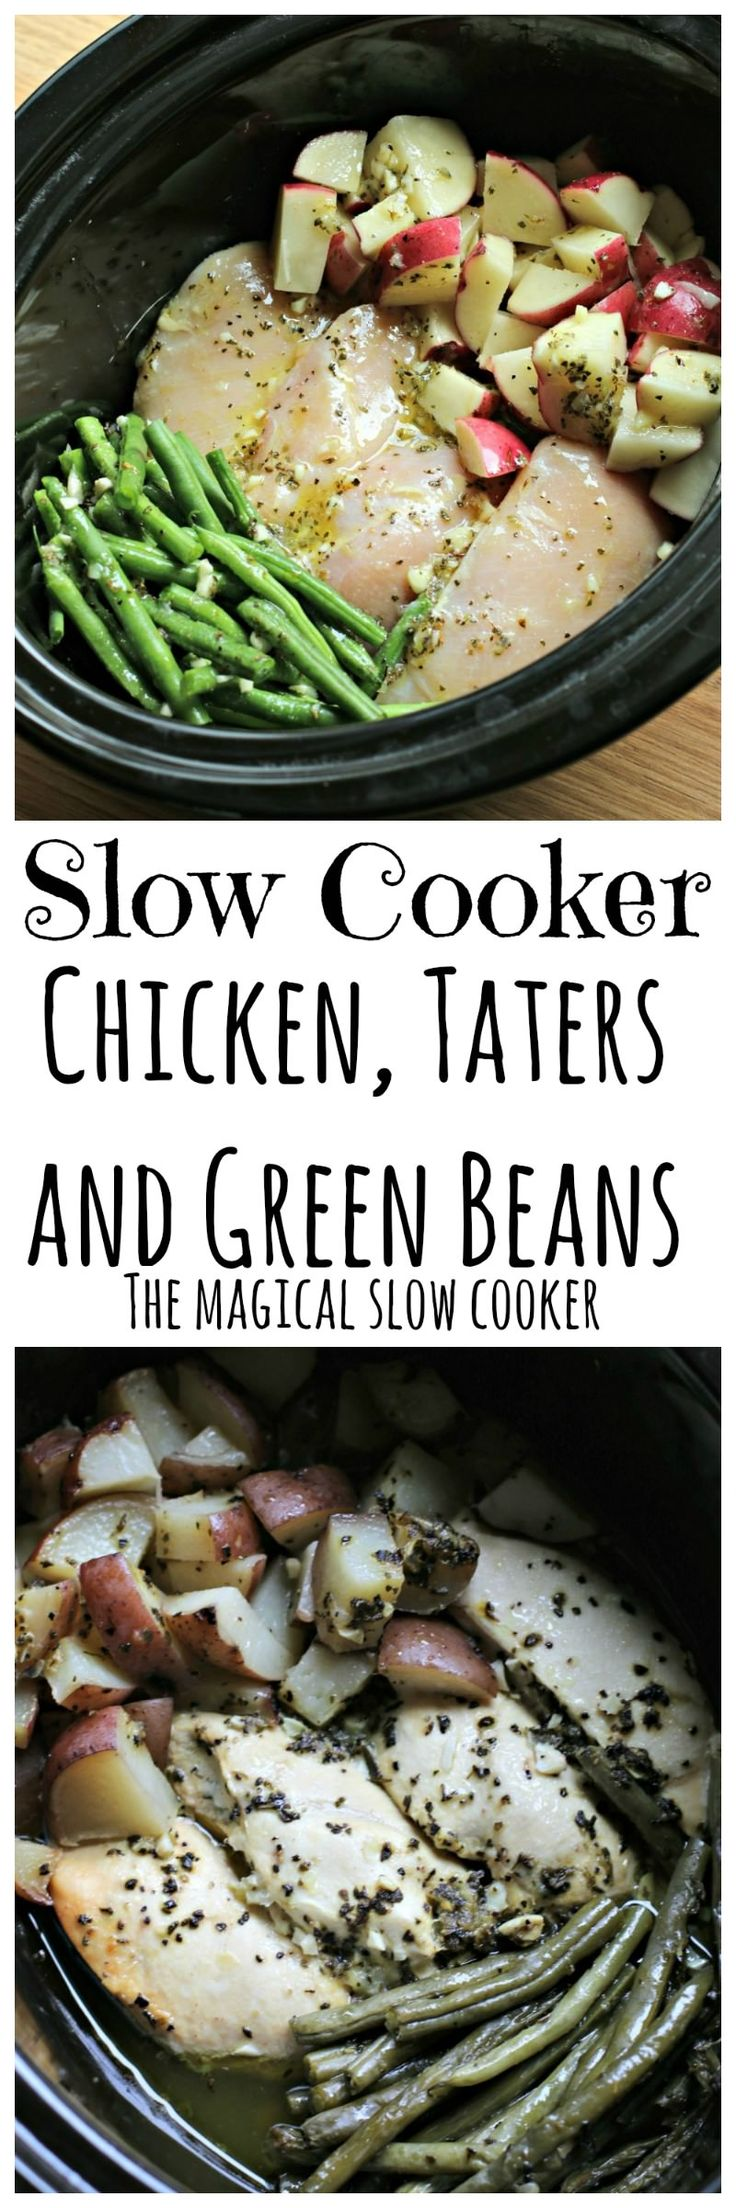 Slow Cooker Seasoned Chicken, Tater and Green Beans  ***Good Tip:  Brown chicken in oven on 'broil' for 10 min.